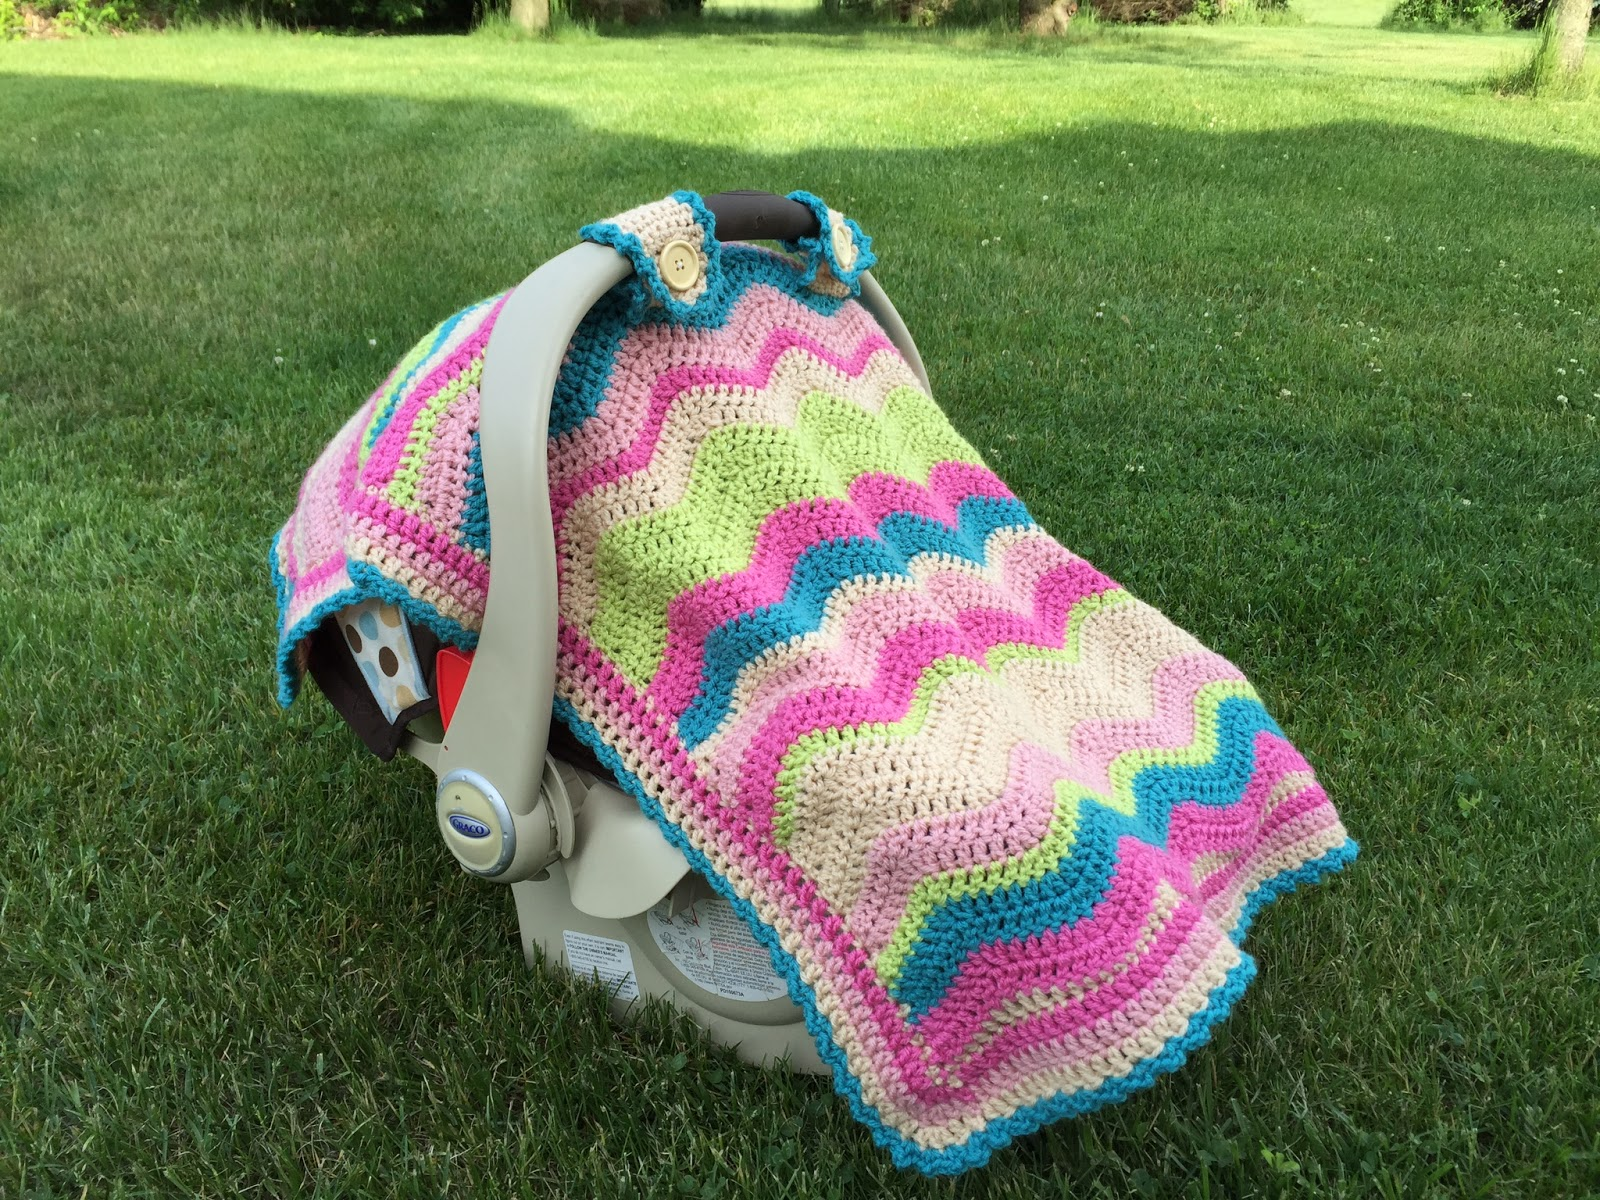 Free Crochet Pattern For Baby Car Seat Cover : Free Crochet Pattern: Emerson Car Seat Cover or Baby Blanket